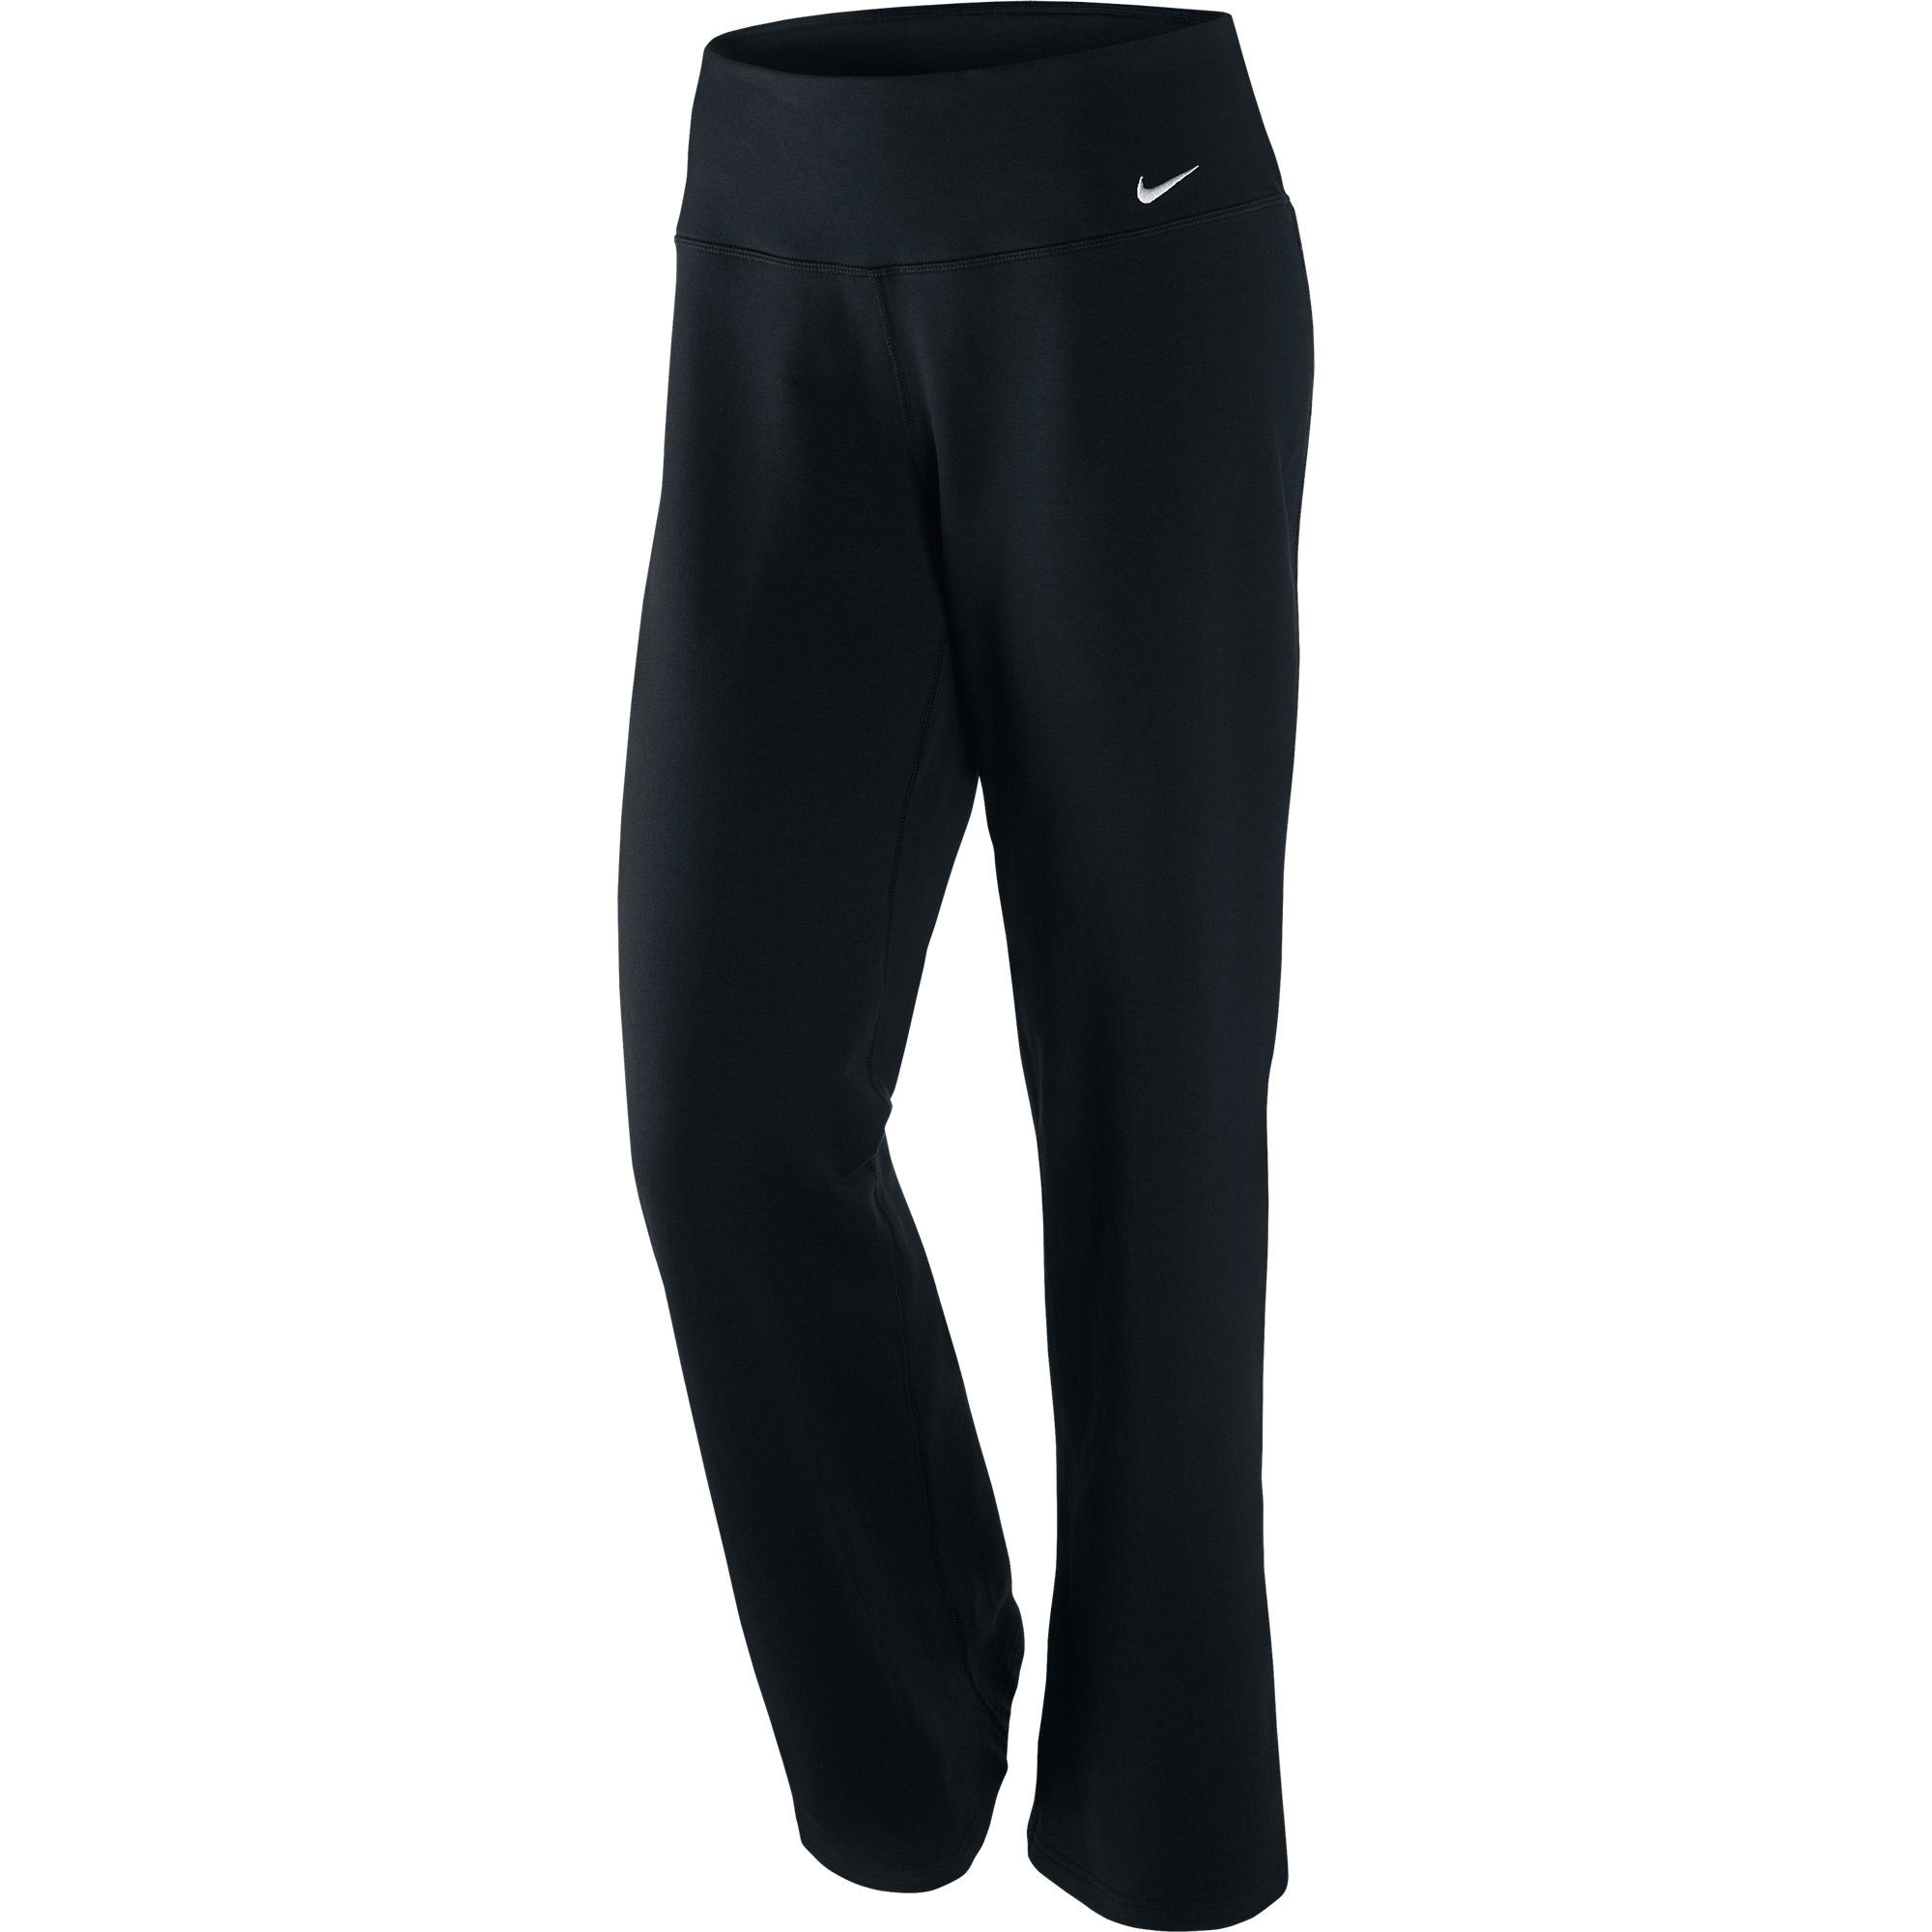 pantalons de running nike ladies loose dri fit pant aw12 wiggle france. Black Bedroom Furniture Sets. Home Design Ideas